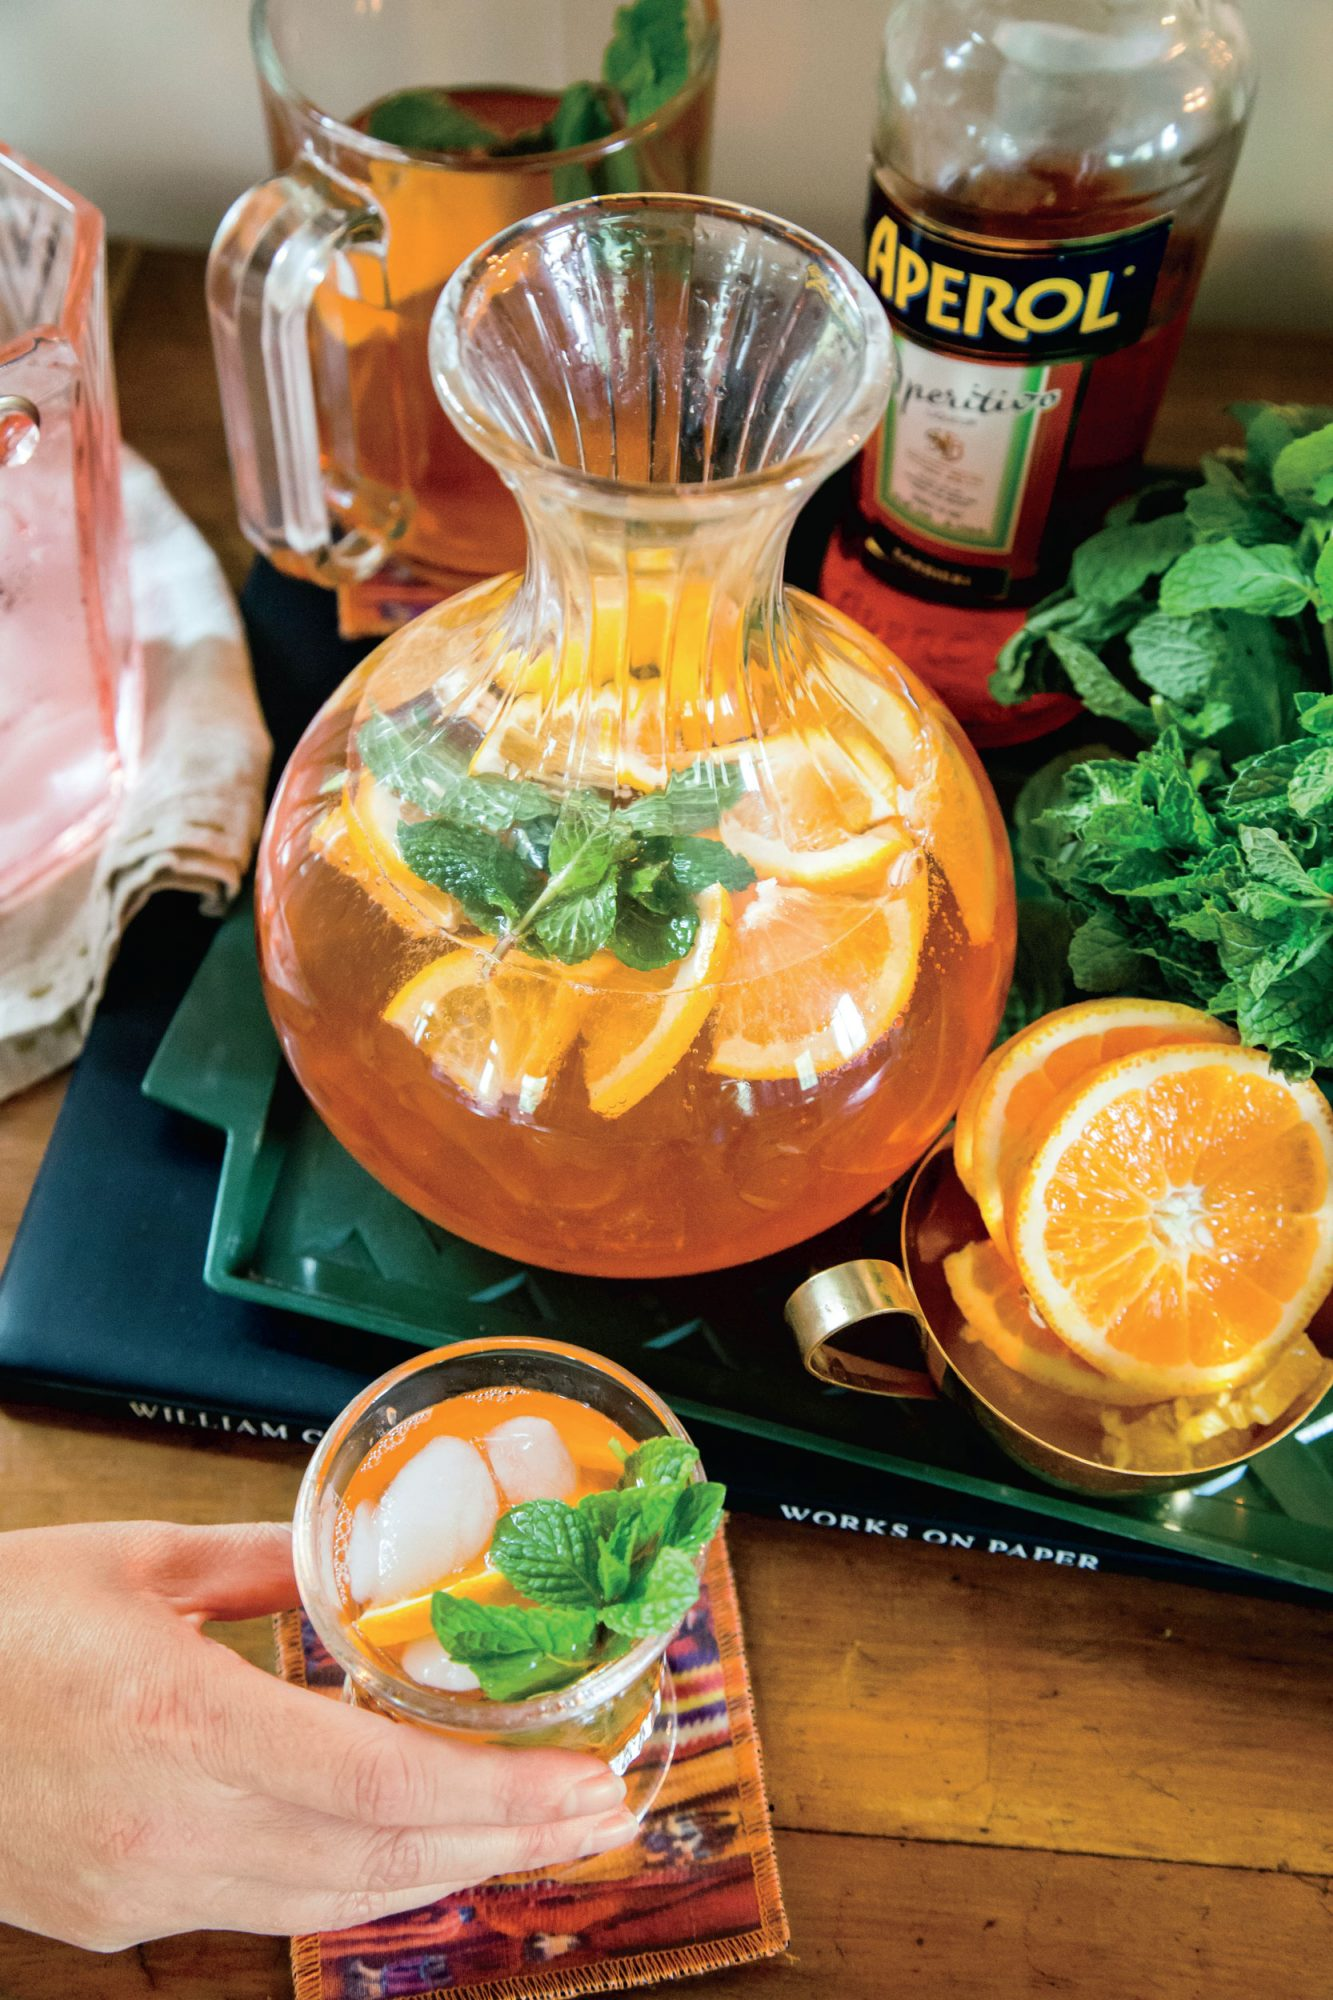 Aperol and Blood Orange-Mint Spritz image